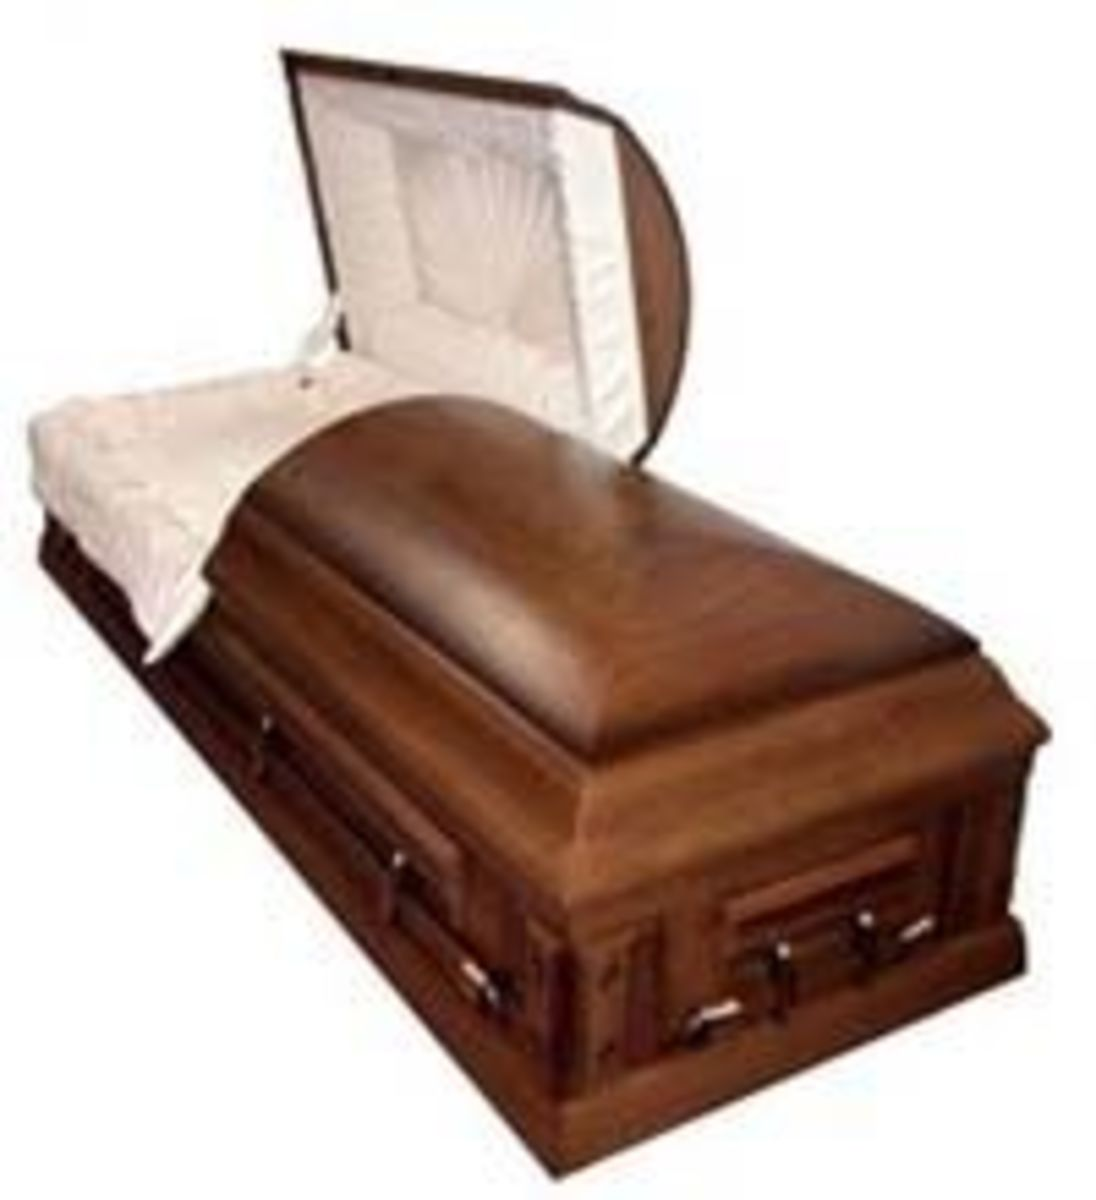 Half-open wood grain casket with white satin lining